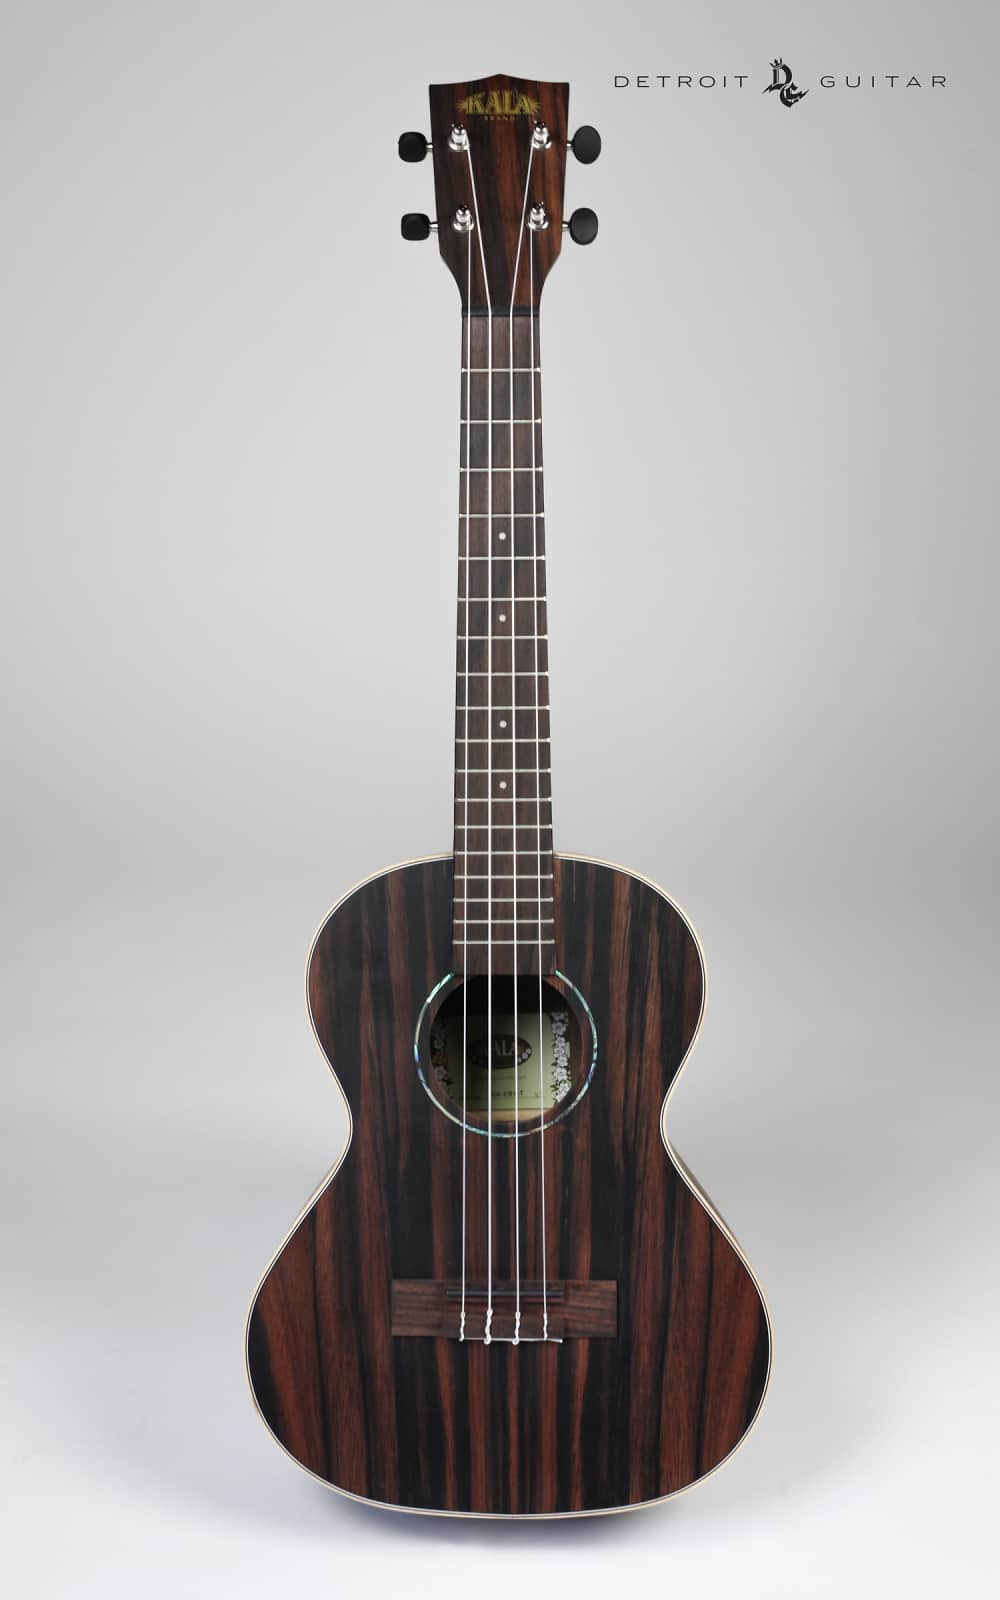 brand new kala ka eby t ebony tenor ukulele uke reverb. Black Bedroom Furniture Sets. Home Design Ideas